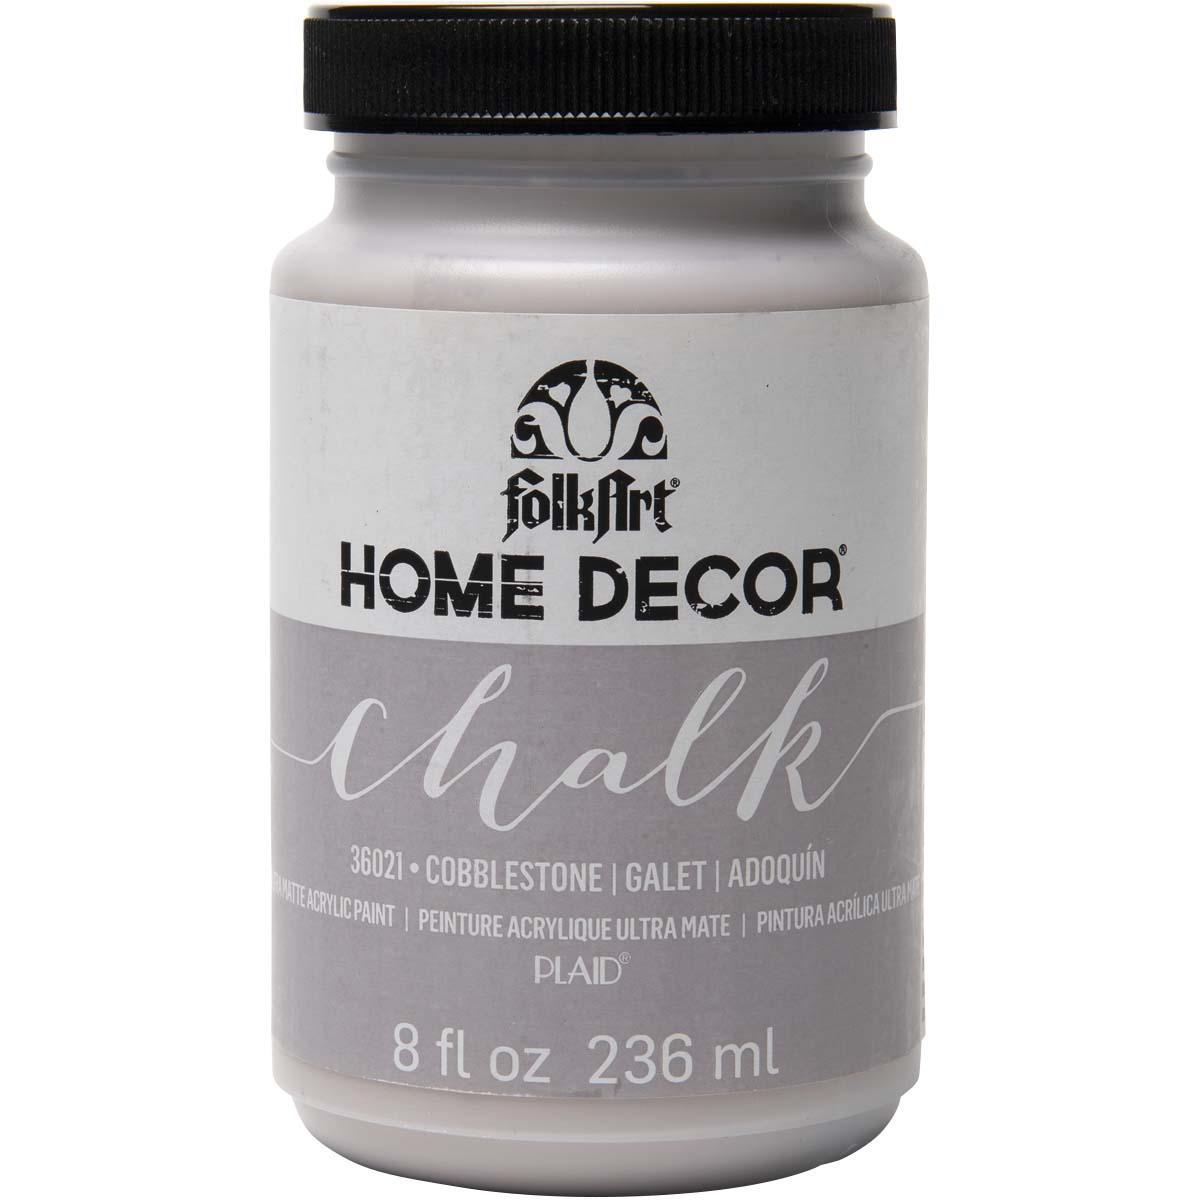 FolkArt ® Home Decor™ Chalk - Cobblestone, 8 oz. - 36021